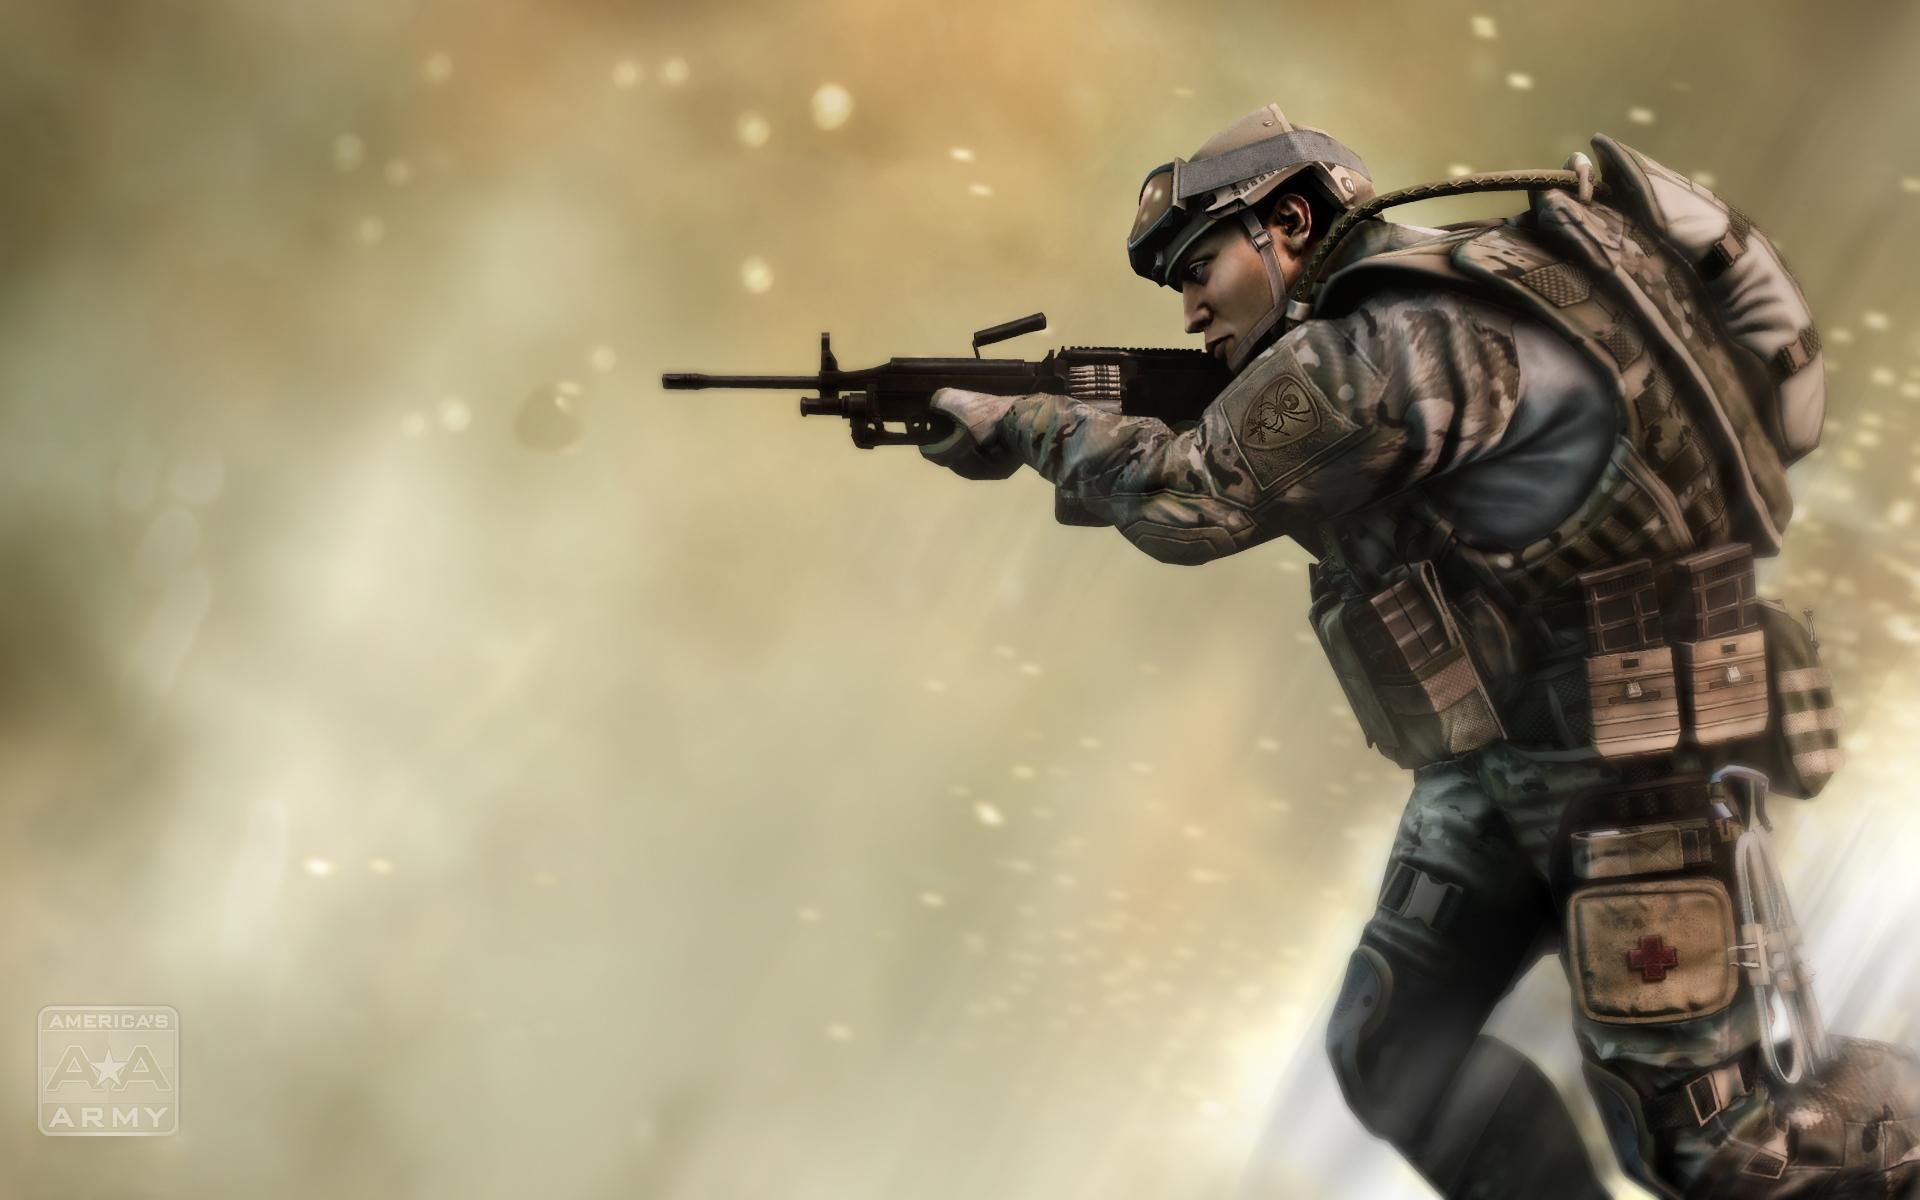 Army Hd Wallpapers 1080p 57 Image Collections Of Wallpapers Army Images Military Wallpaper Army Wallpaper